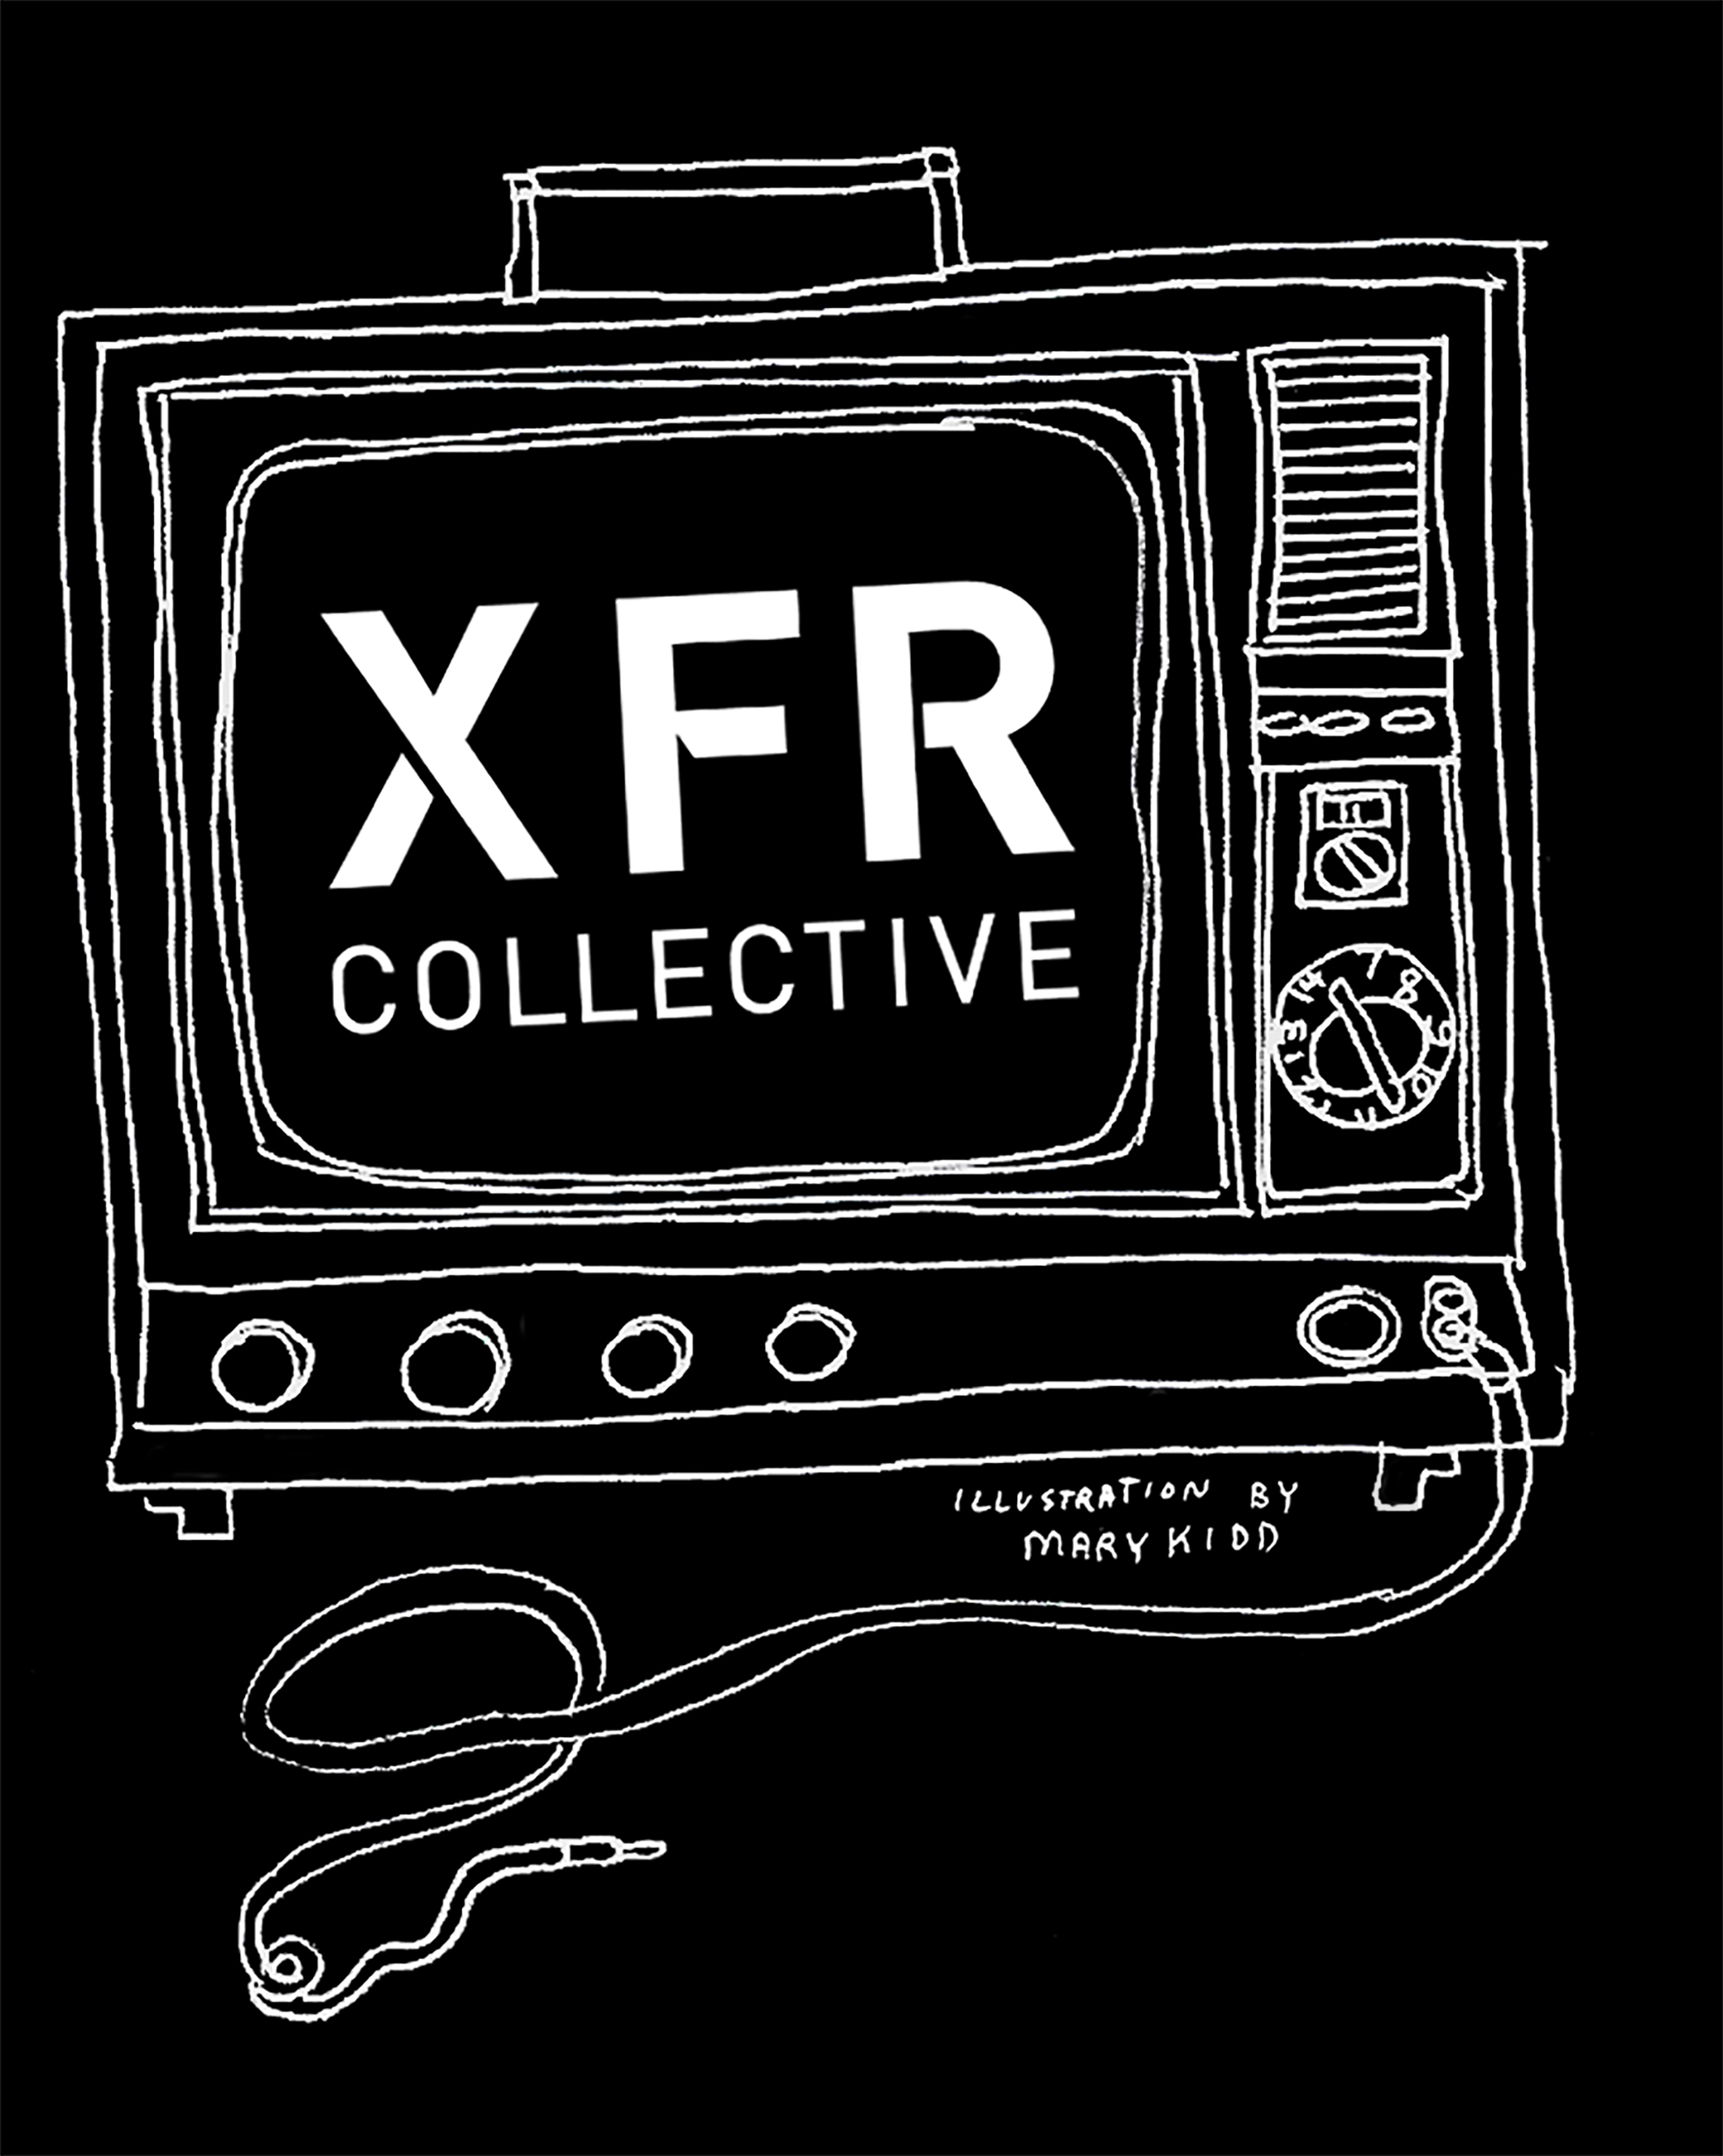 XFR Collective